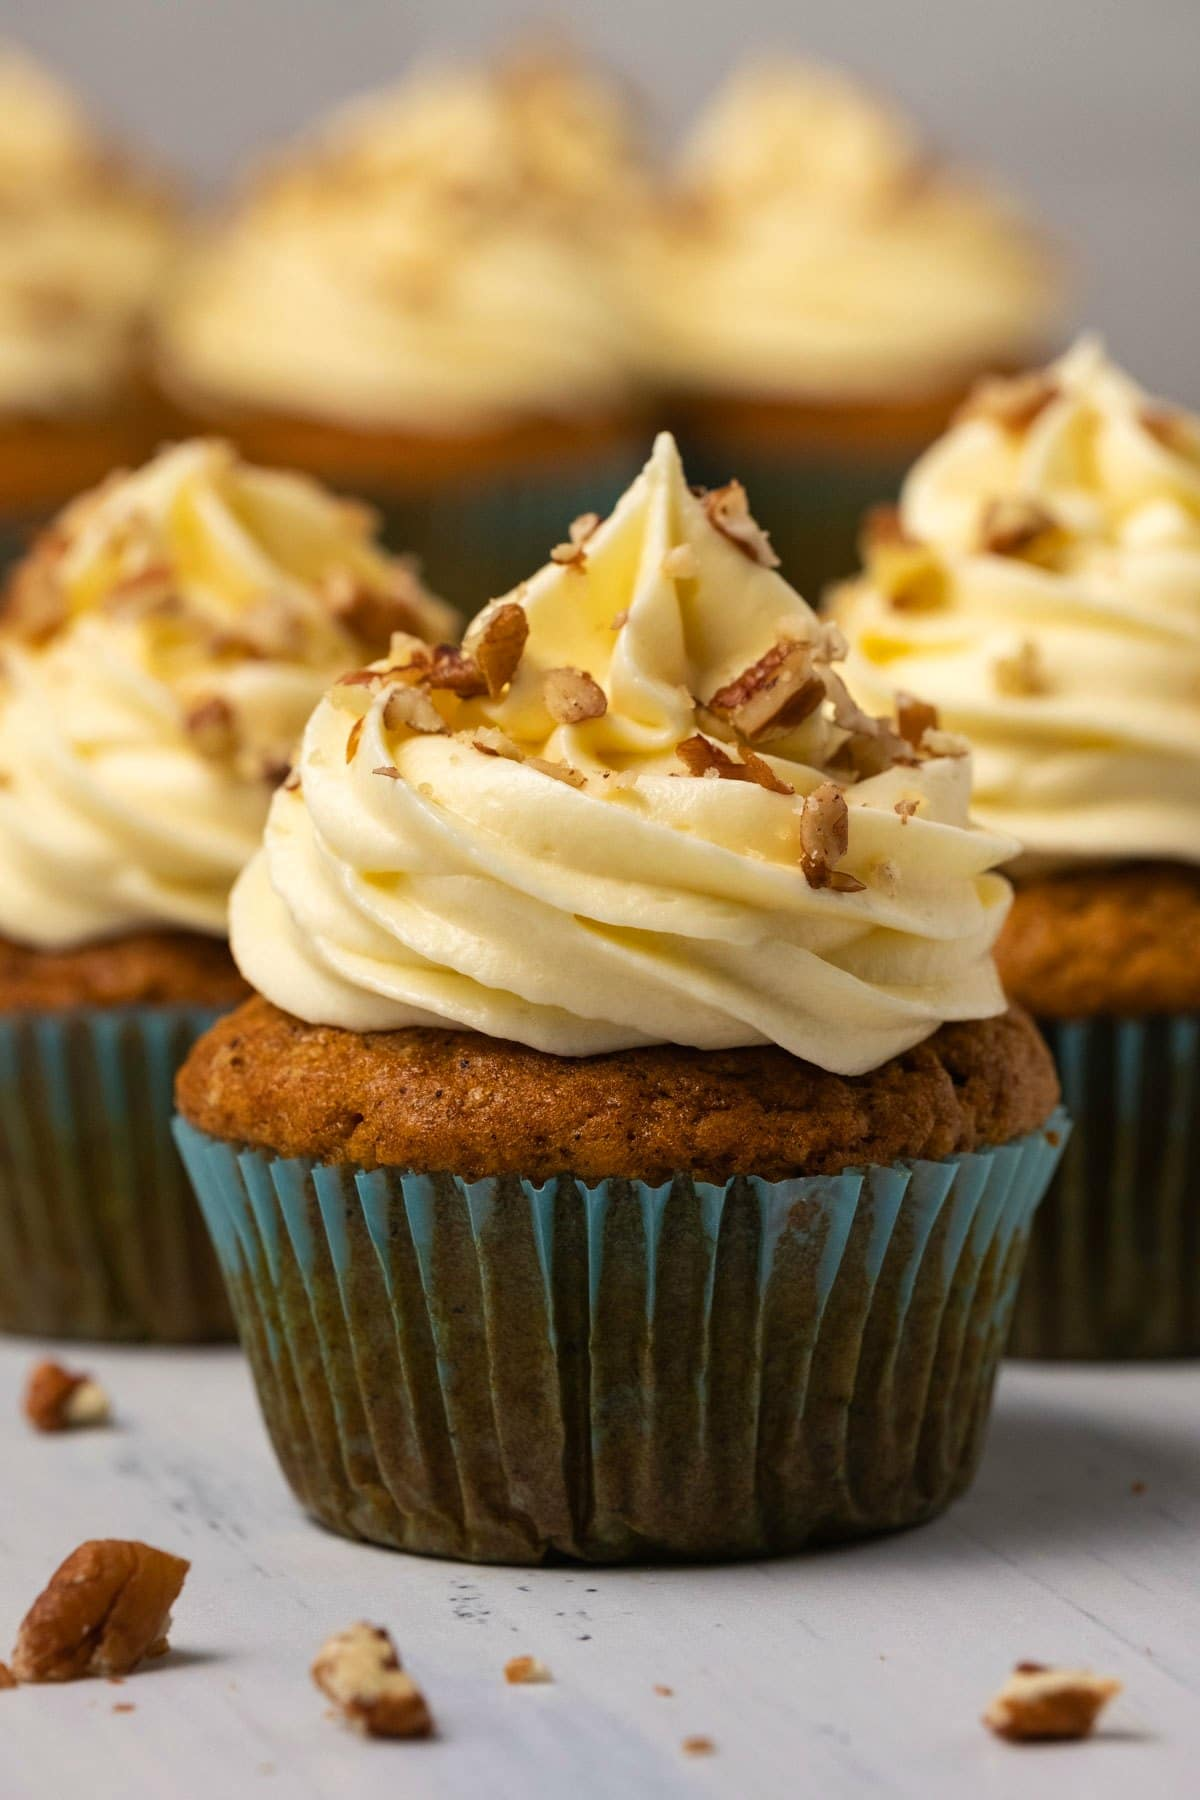 Pumpkin cupcakes topped with cream cheese frosting and chopped pecans.